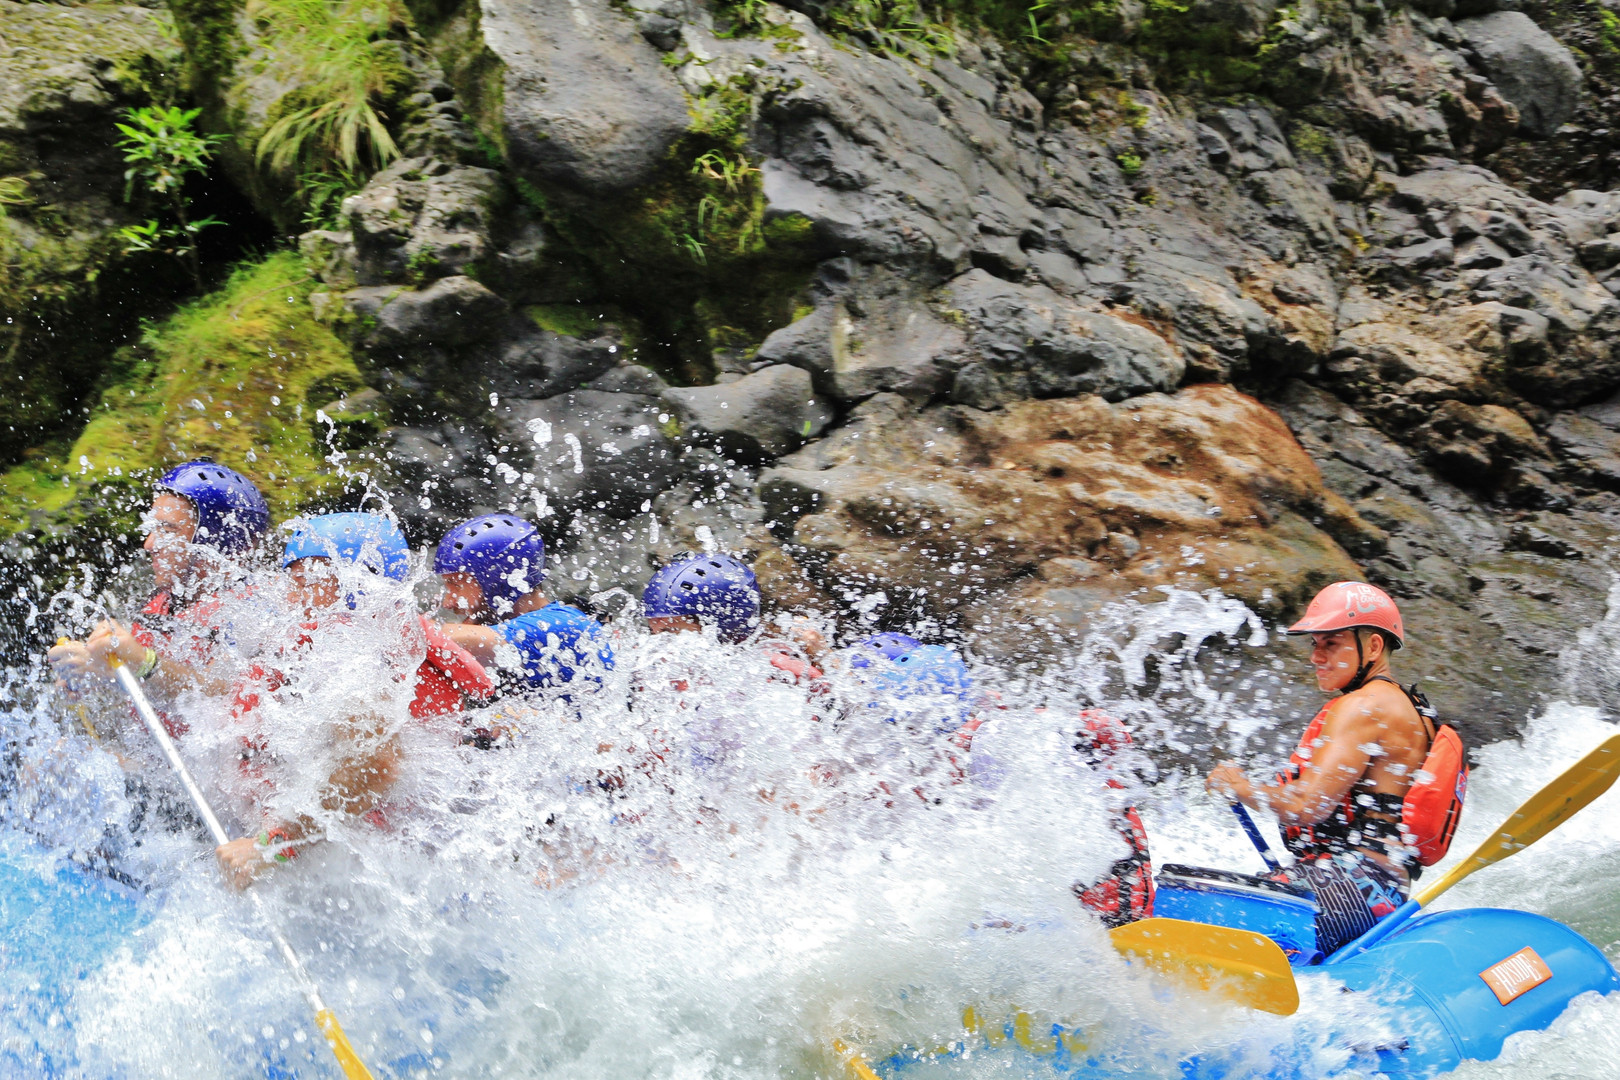 pacuare-river-rafting-tour-costa-rica-2.